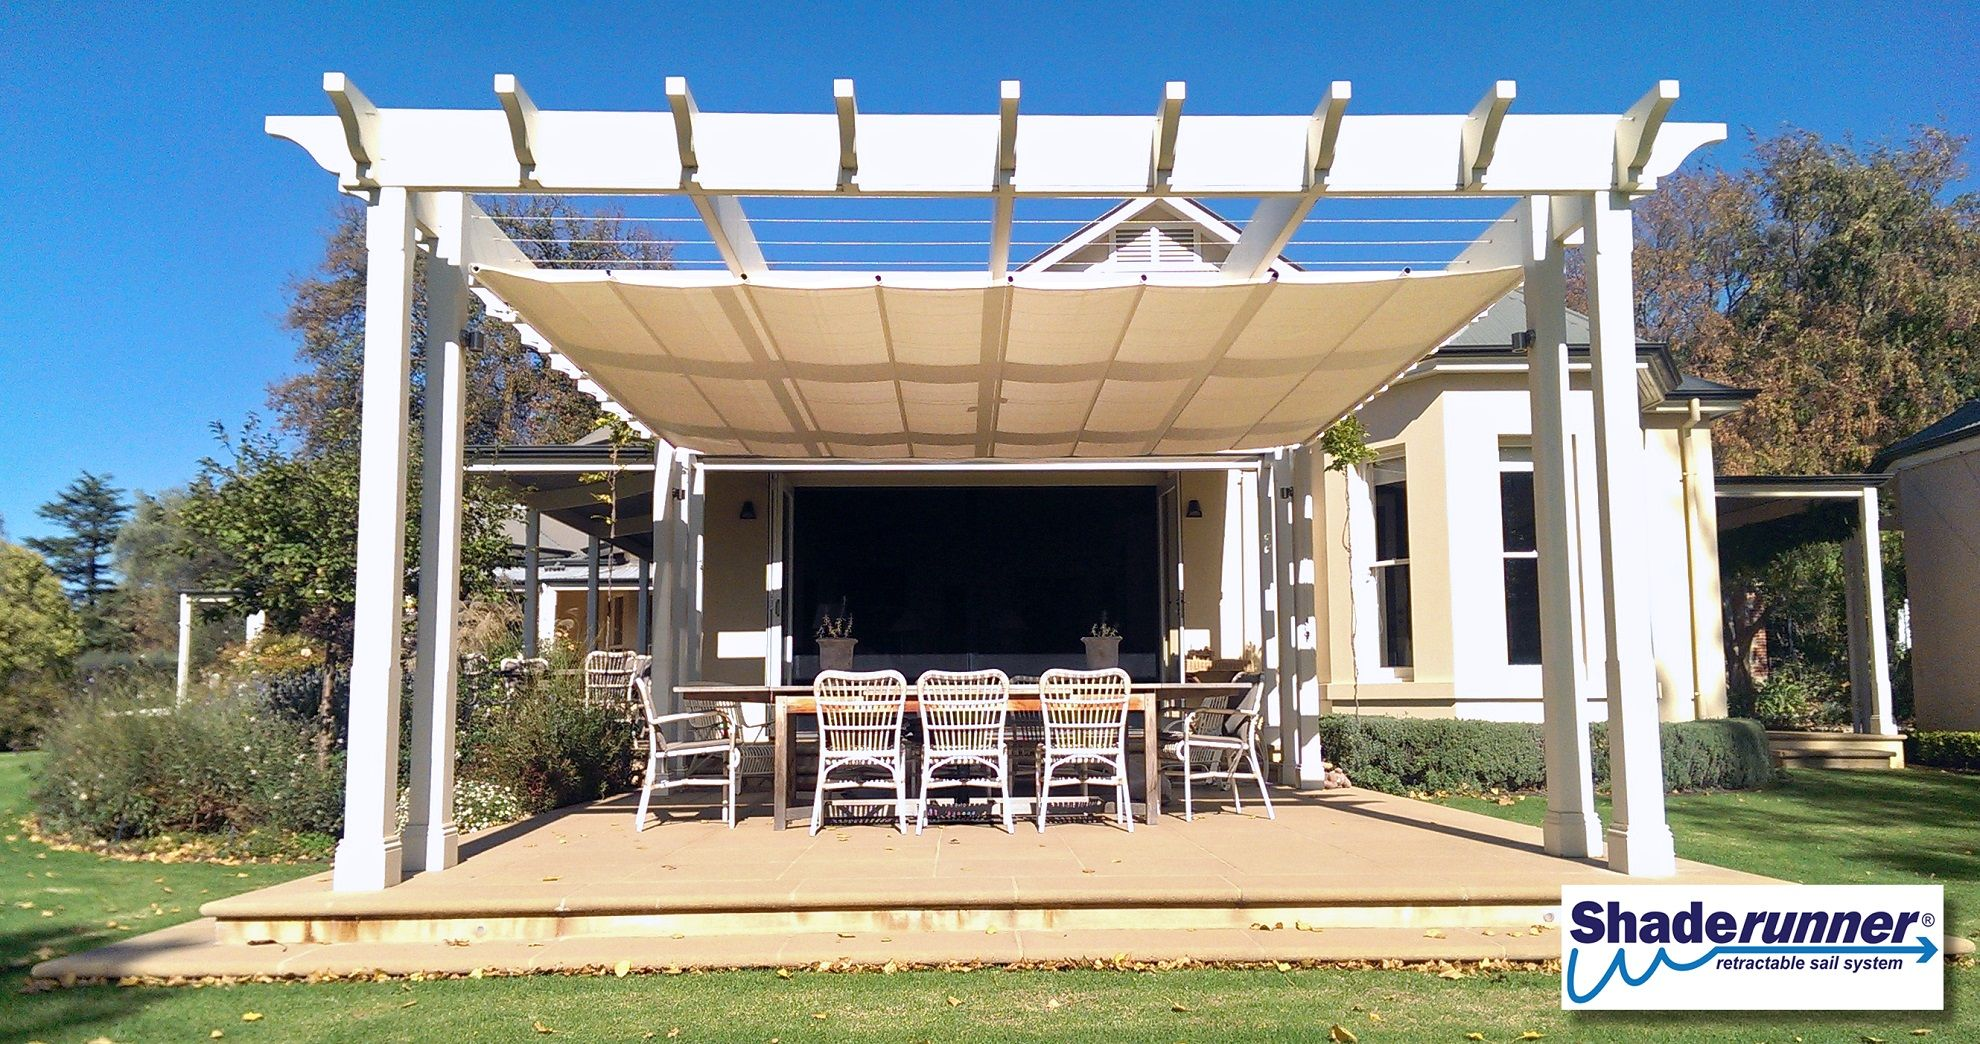 New Wave Shade Version 3 Retractable Shades New Product Custom Size Commercial Quality Shade Sails Llc Retractable Shade Pergola Shade Shade Sail